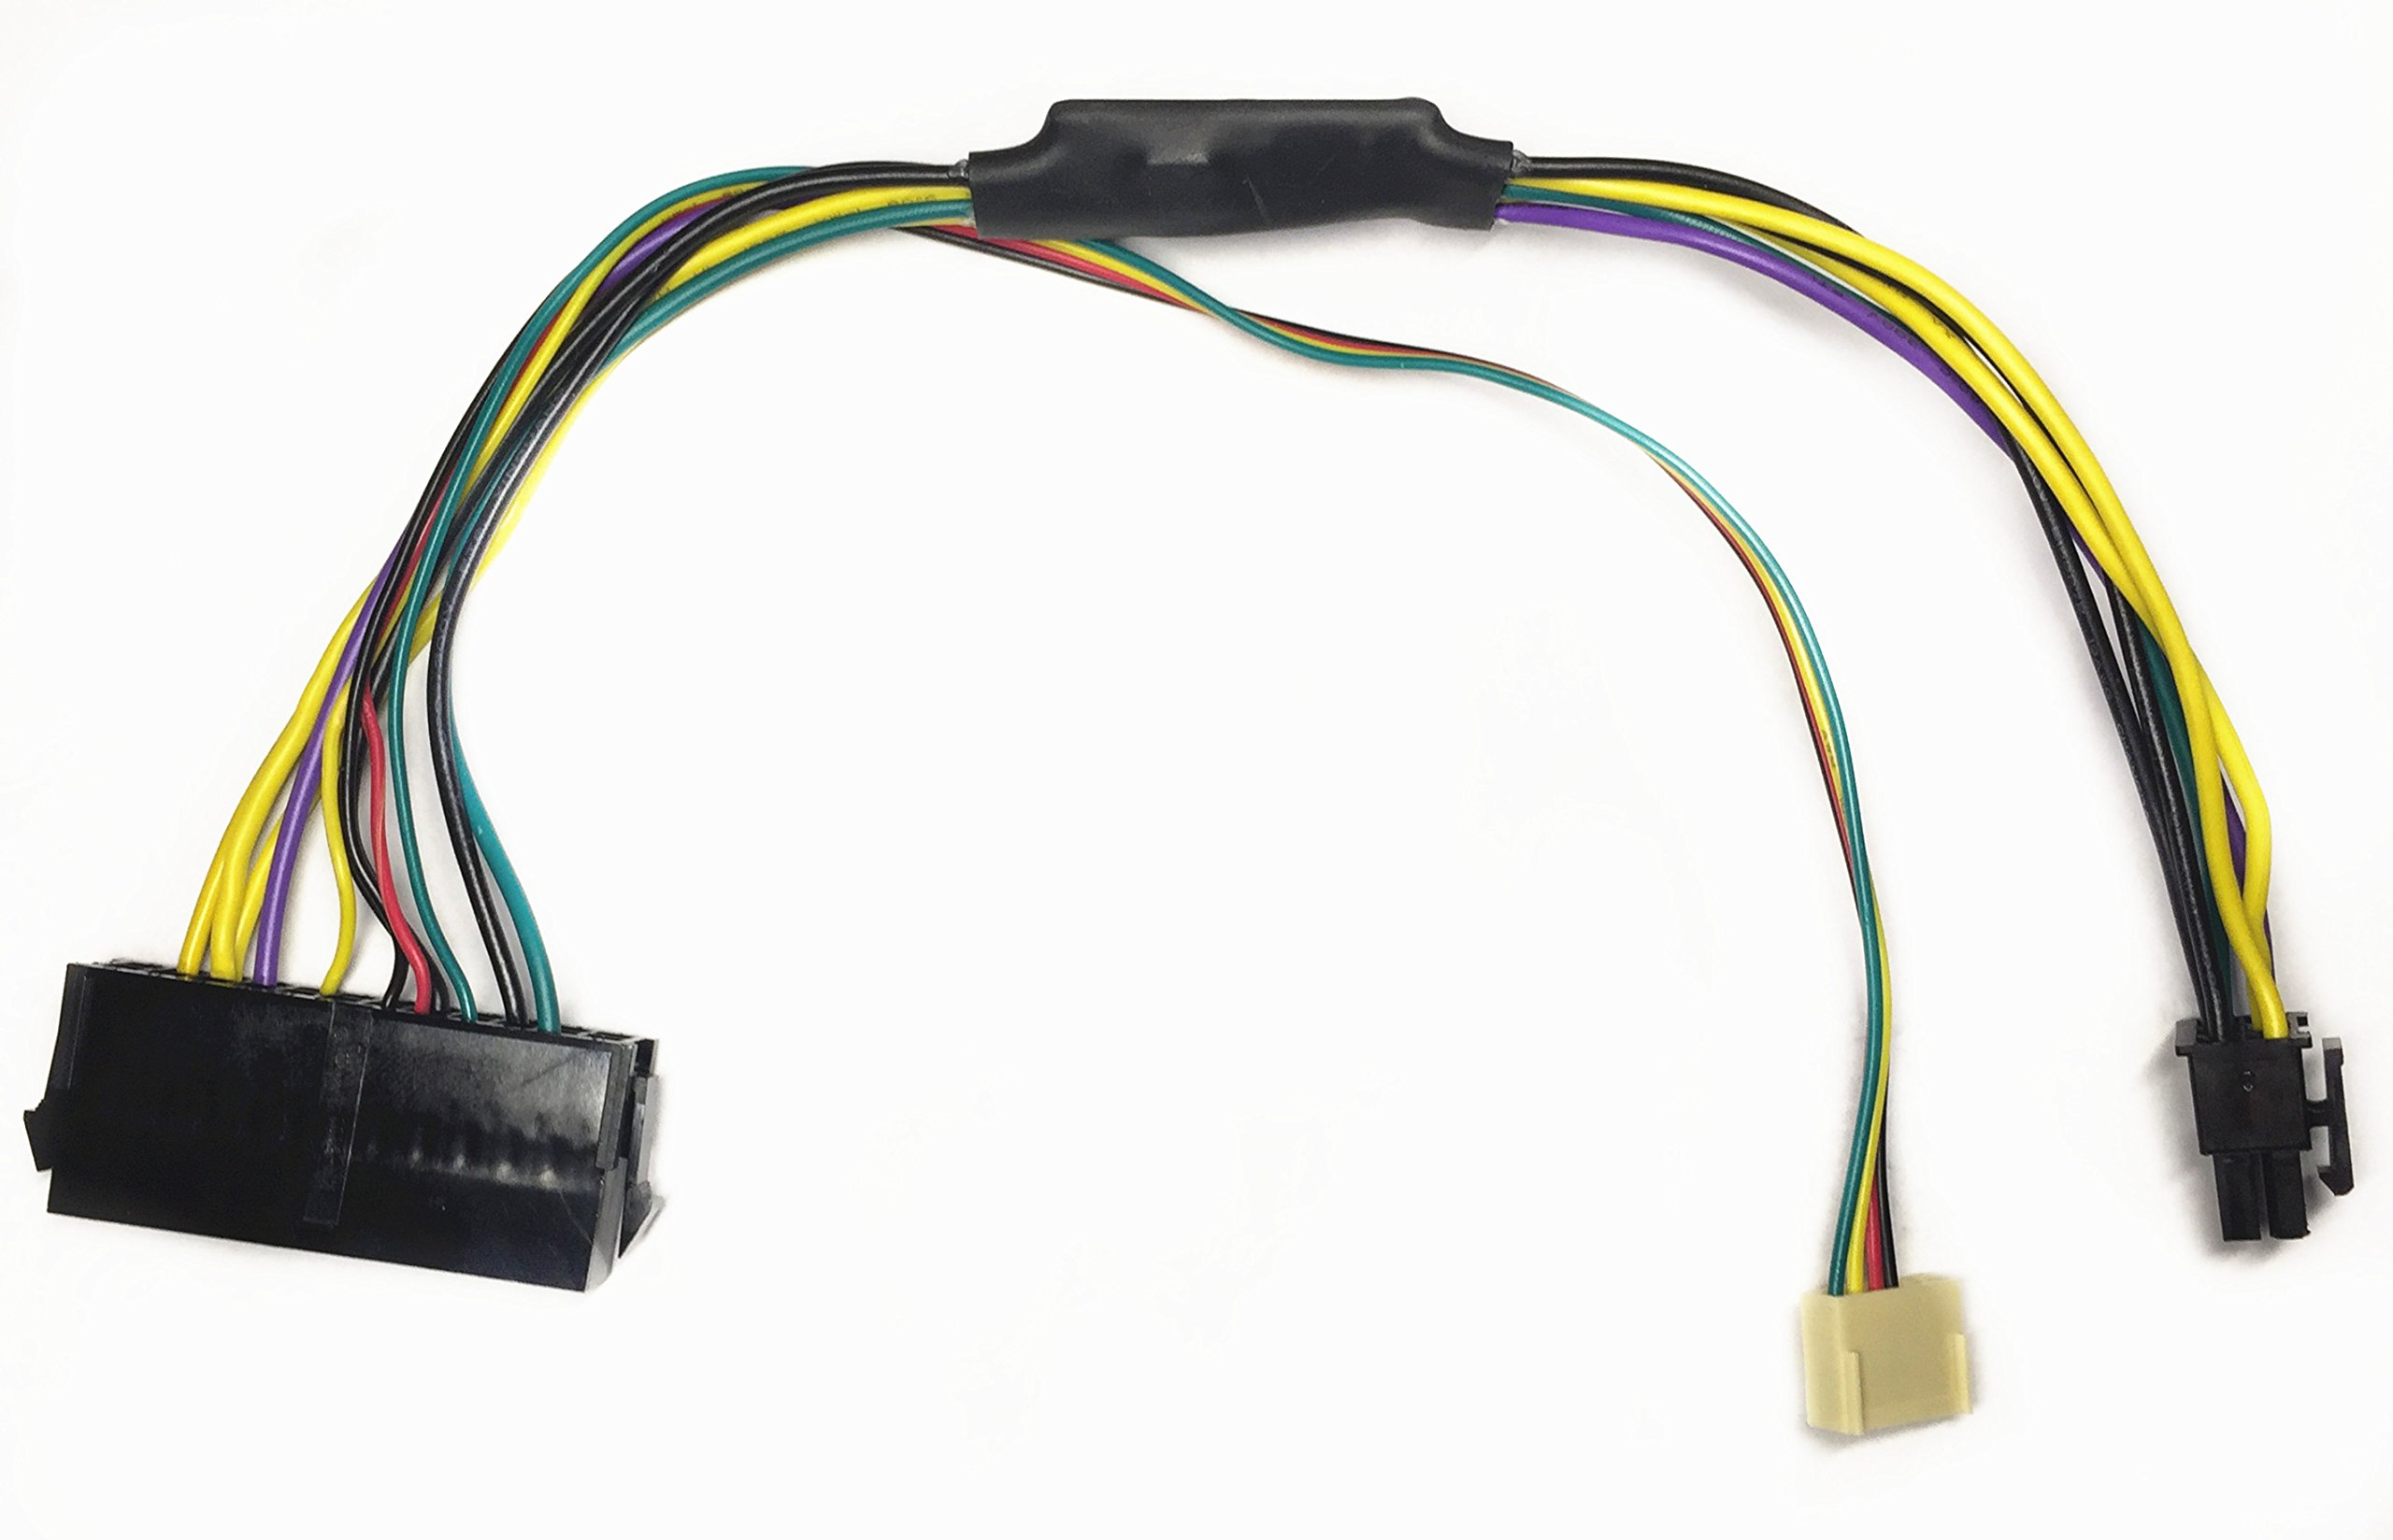 EZSync ATX PSU (24-Pin) to HP Motherboard (6-Pin PCI-E, 2 ports) Power Adapter Cable for HP Z220/Z230 Workstation, 11 inches and 18 AWG, EZSync910 by EZSync (Image #1)